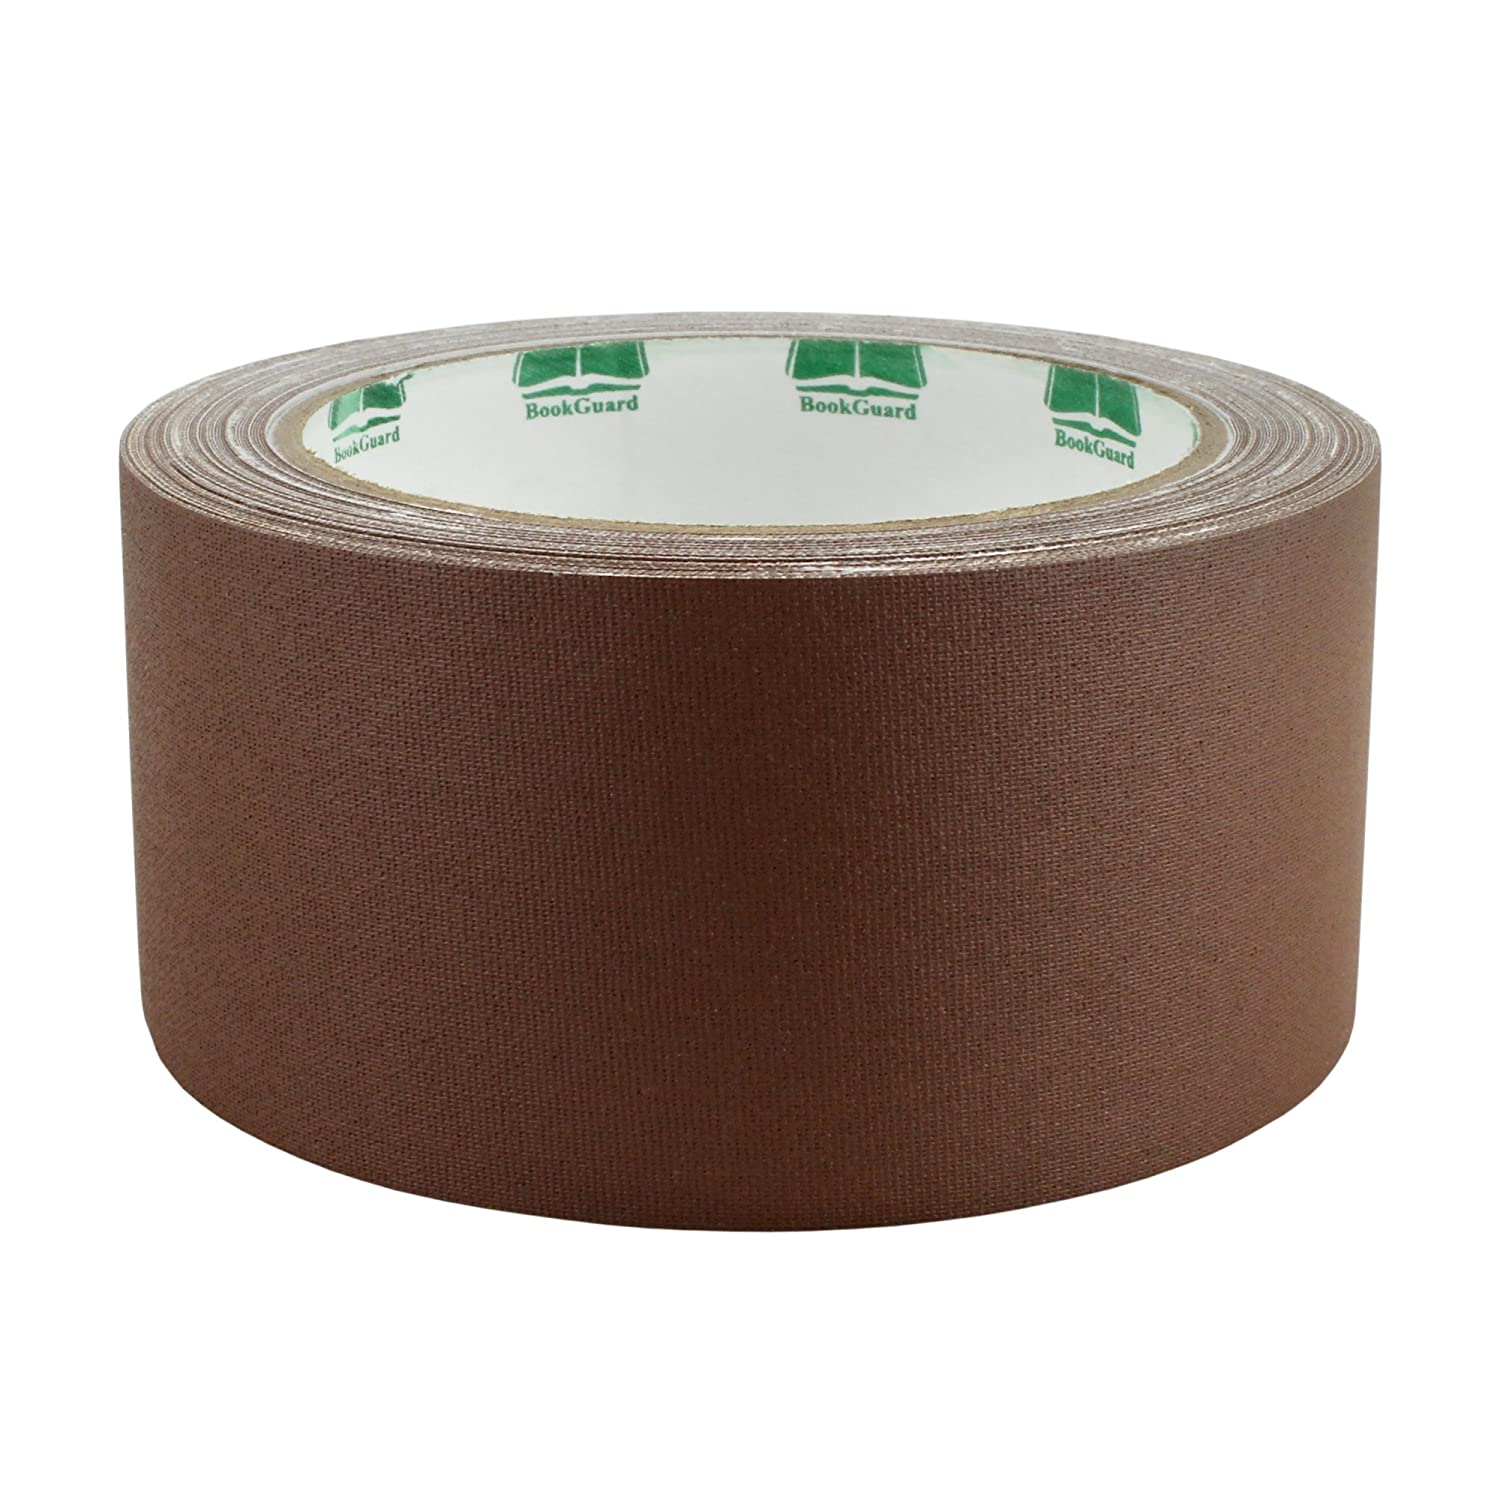 2 Burgundy Colored, Premium Cloth Bookbinding Repair Tape | 15 Yard Roll (BookGuard Brand) | Archival: Acid free, PH neutral 2 Burgundy Colored ChromaLabel ACAL03155